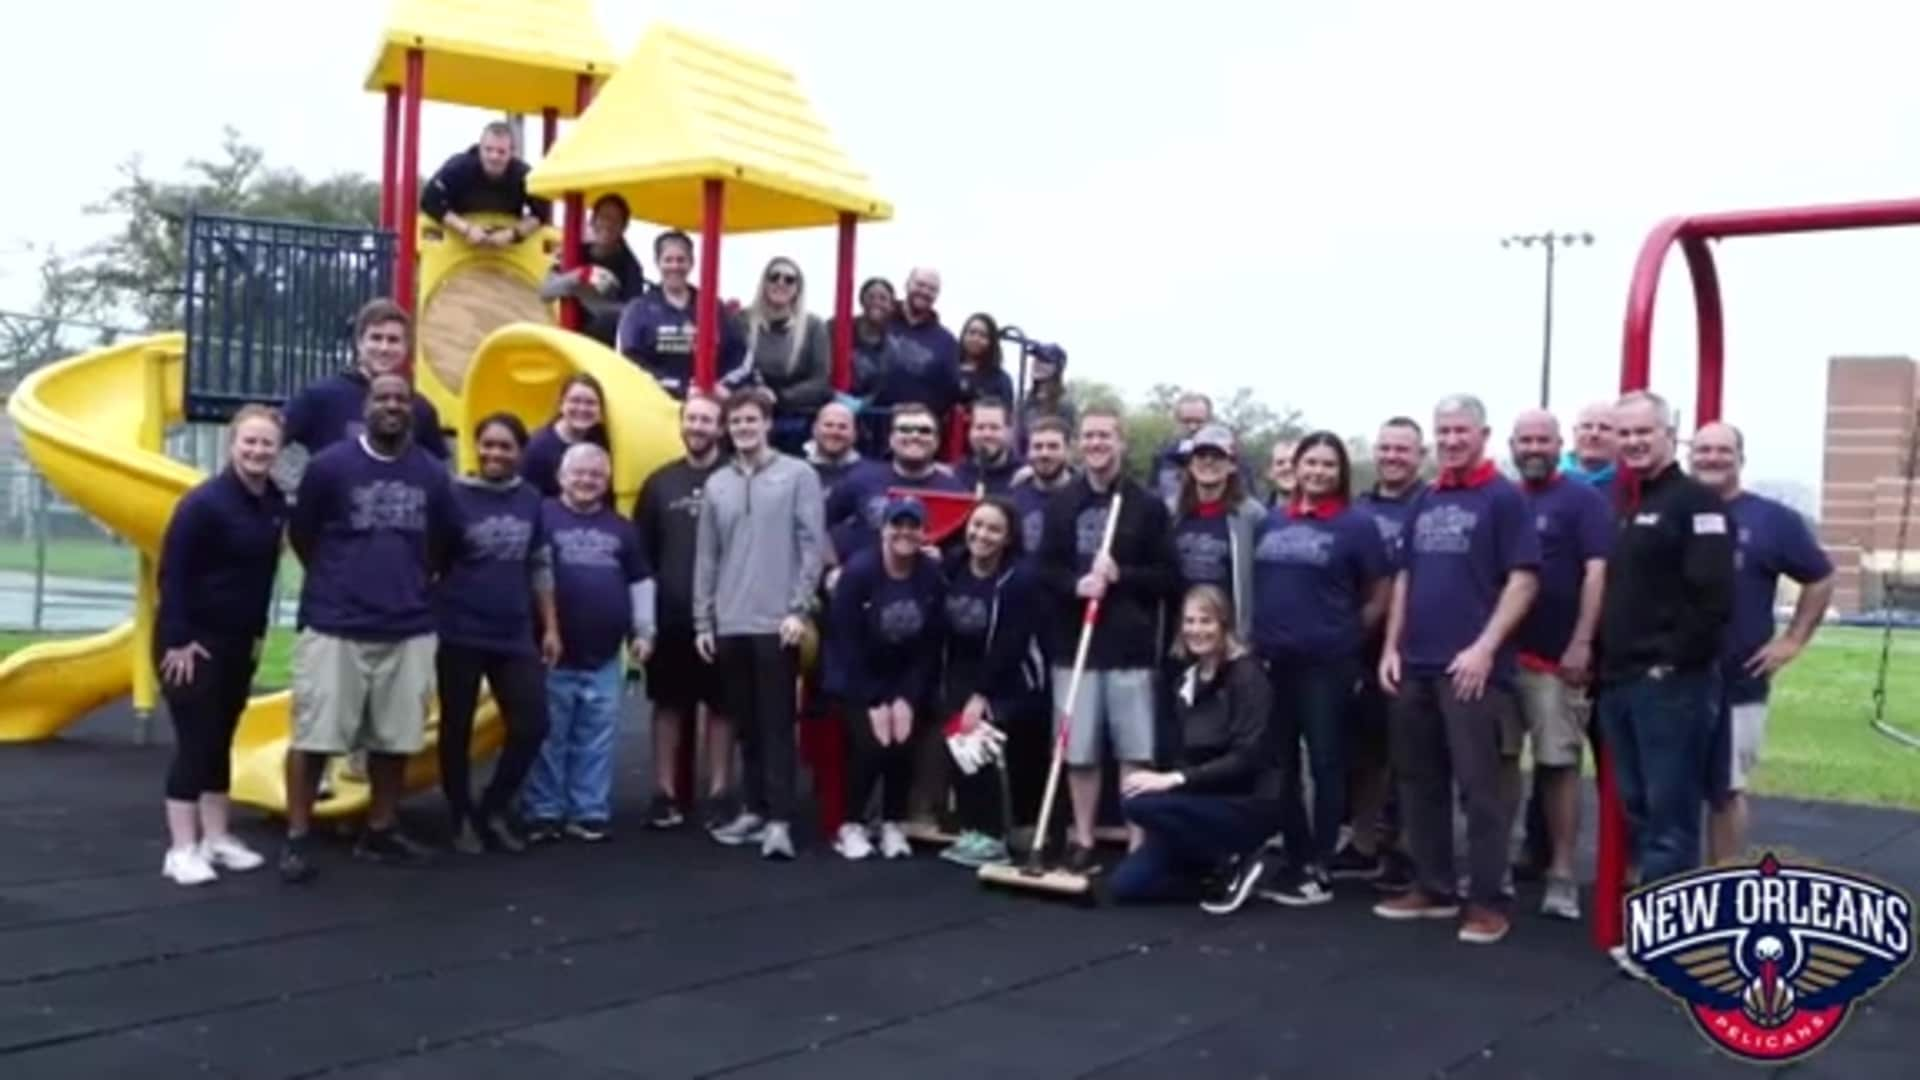 Pelicans cleaned up A.L. Davis Park in partnership with NORD and Sprite in support of Black History Month